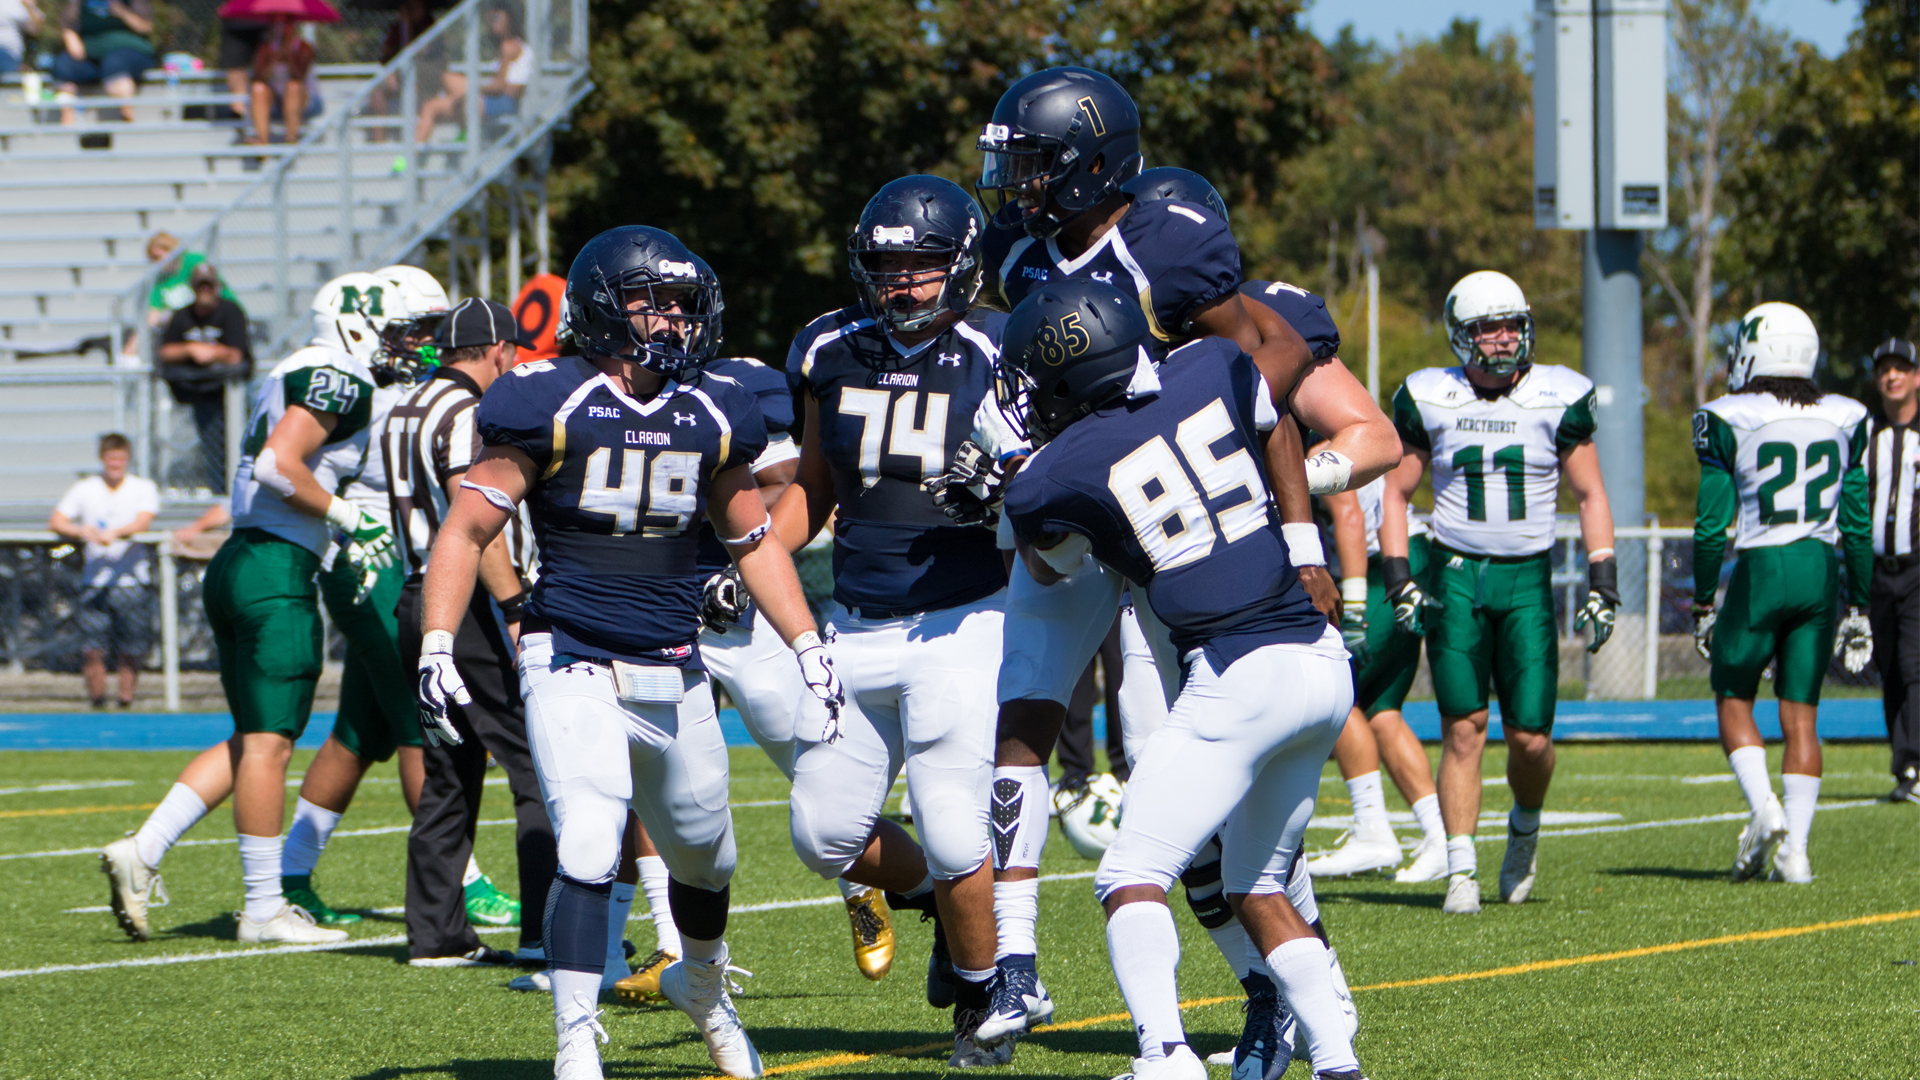 Golden Eagles Battle Mercyhurst Hard but Late Interception Ends Victory Hopes